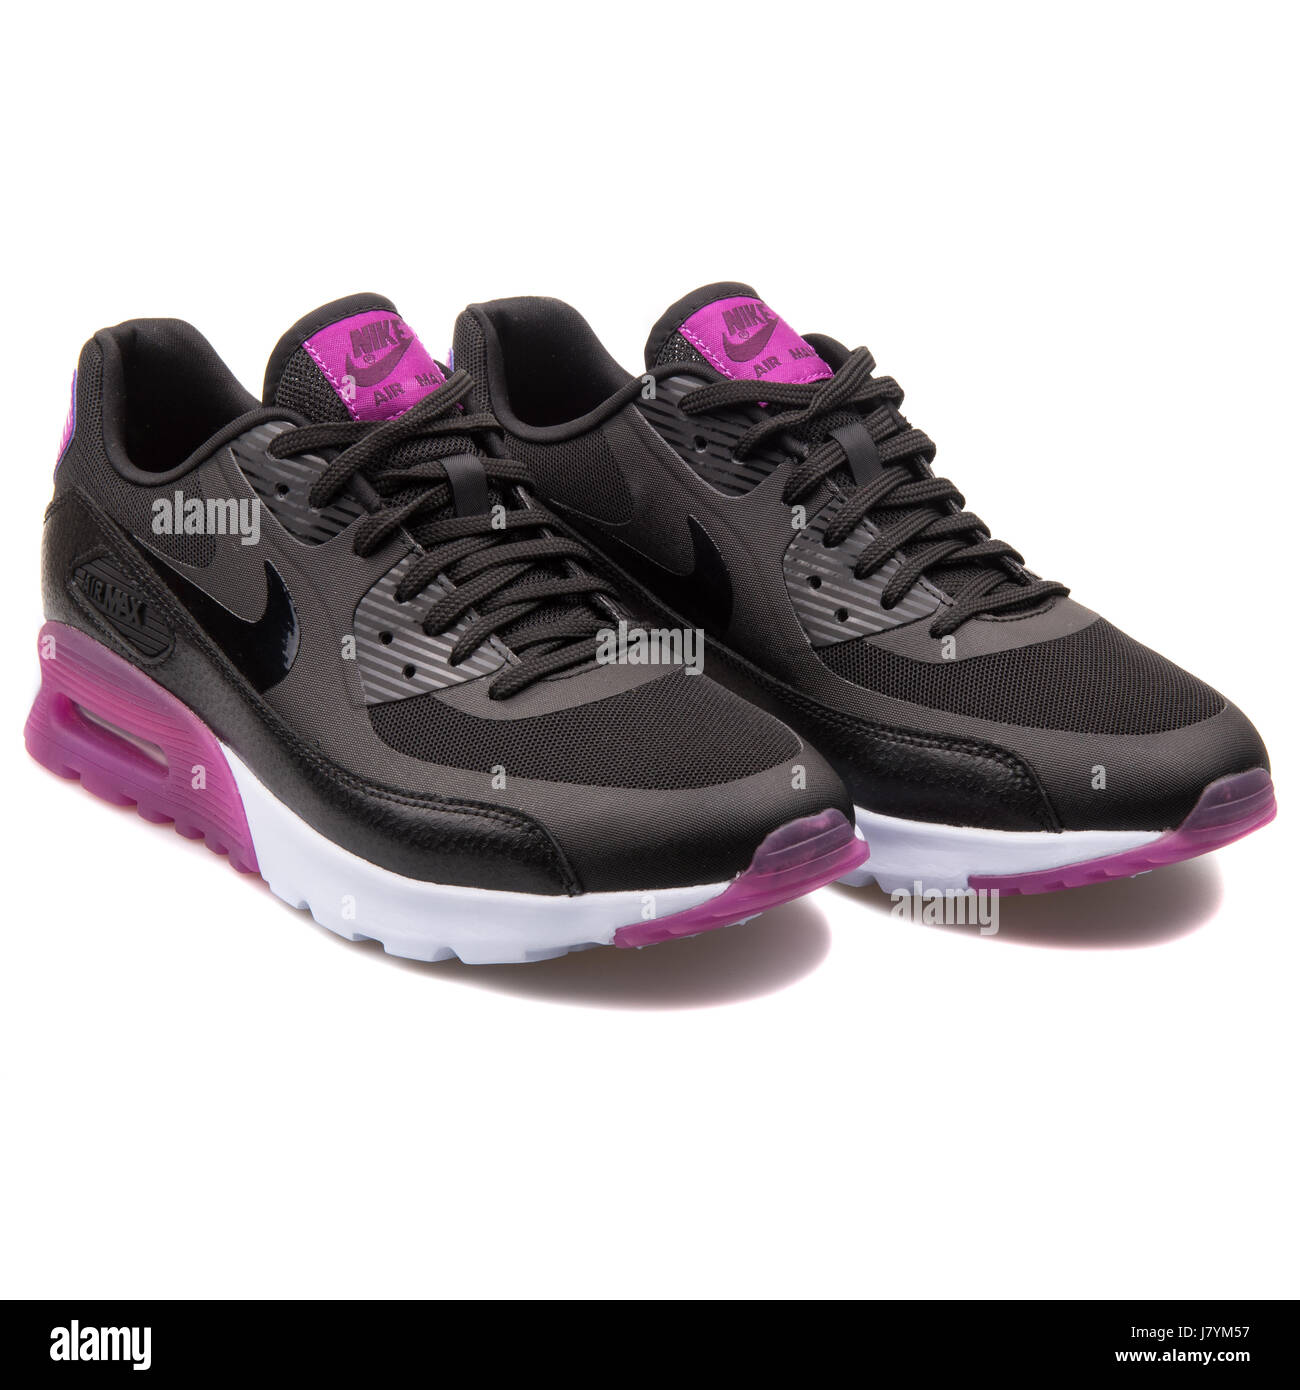 brand new 308d4 80e78 Nike W Air Max 90 Ultra Essential Women's Black and Purple Running Sneakers  - 724981-003